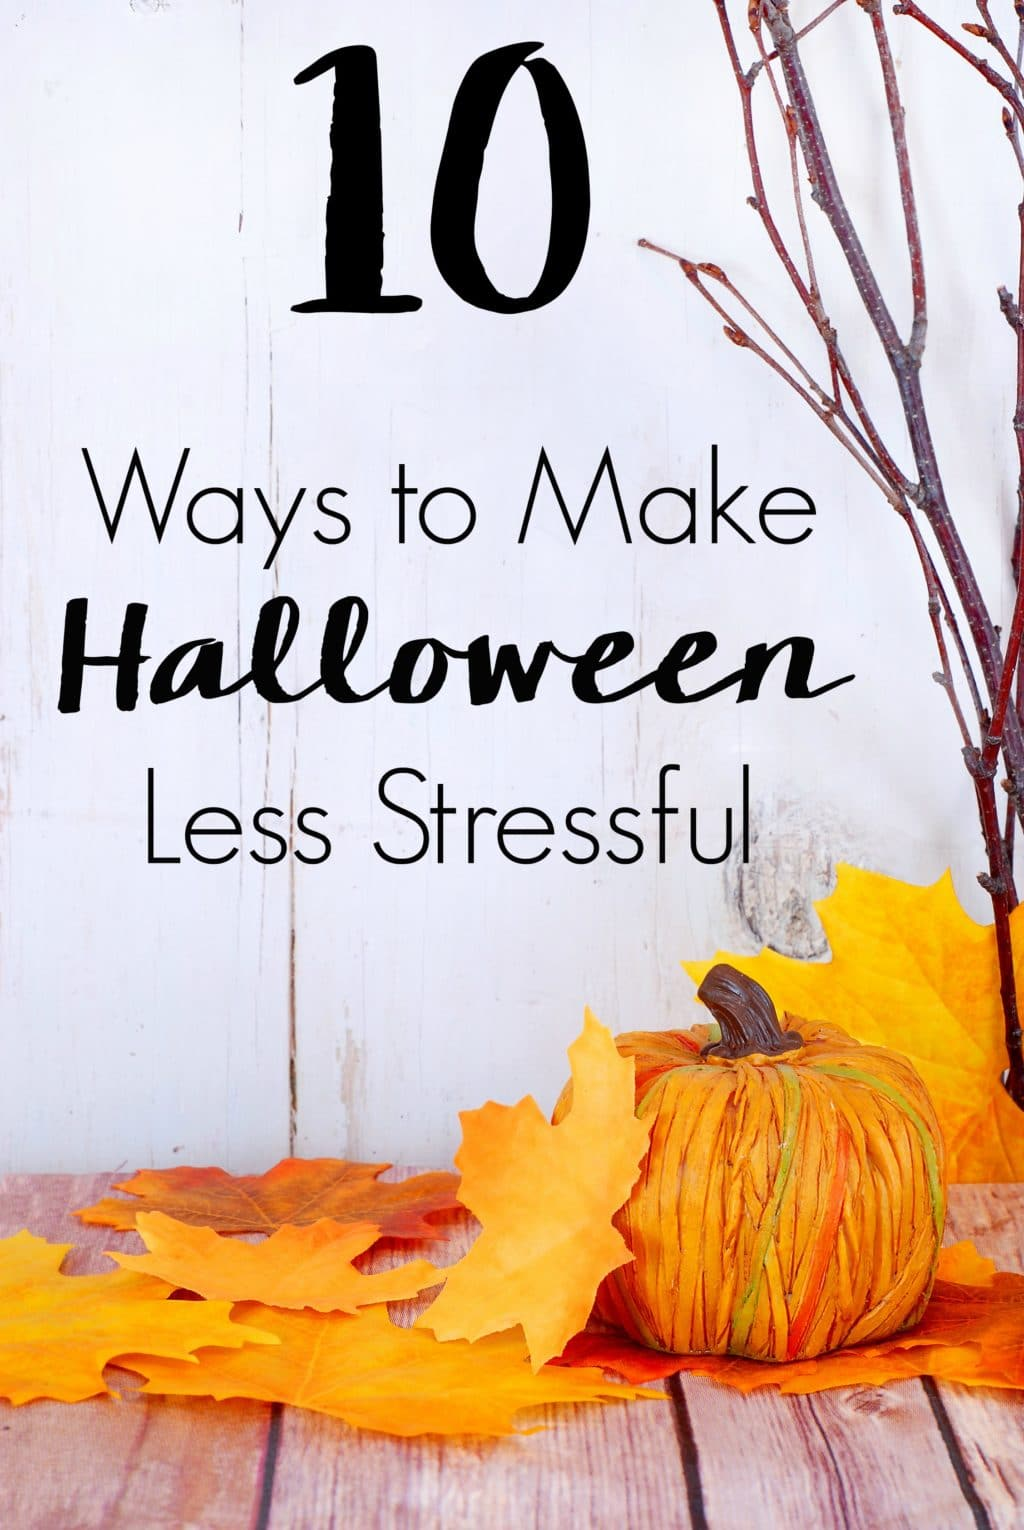 Don't start stressing before the real holiday chaos ensues. Instead, follow these 10 Ways to Make Halloween Less Stressful.